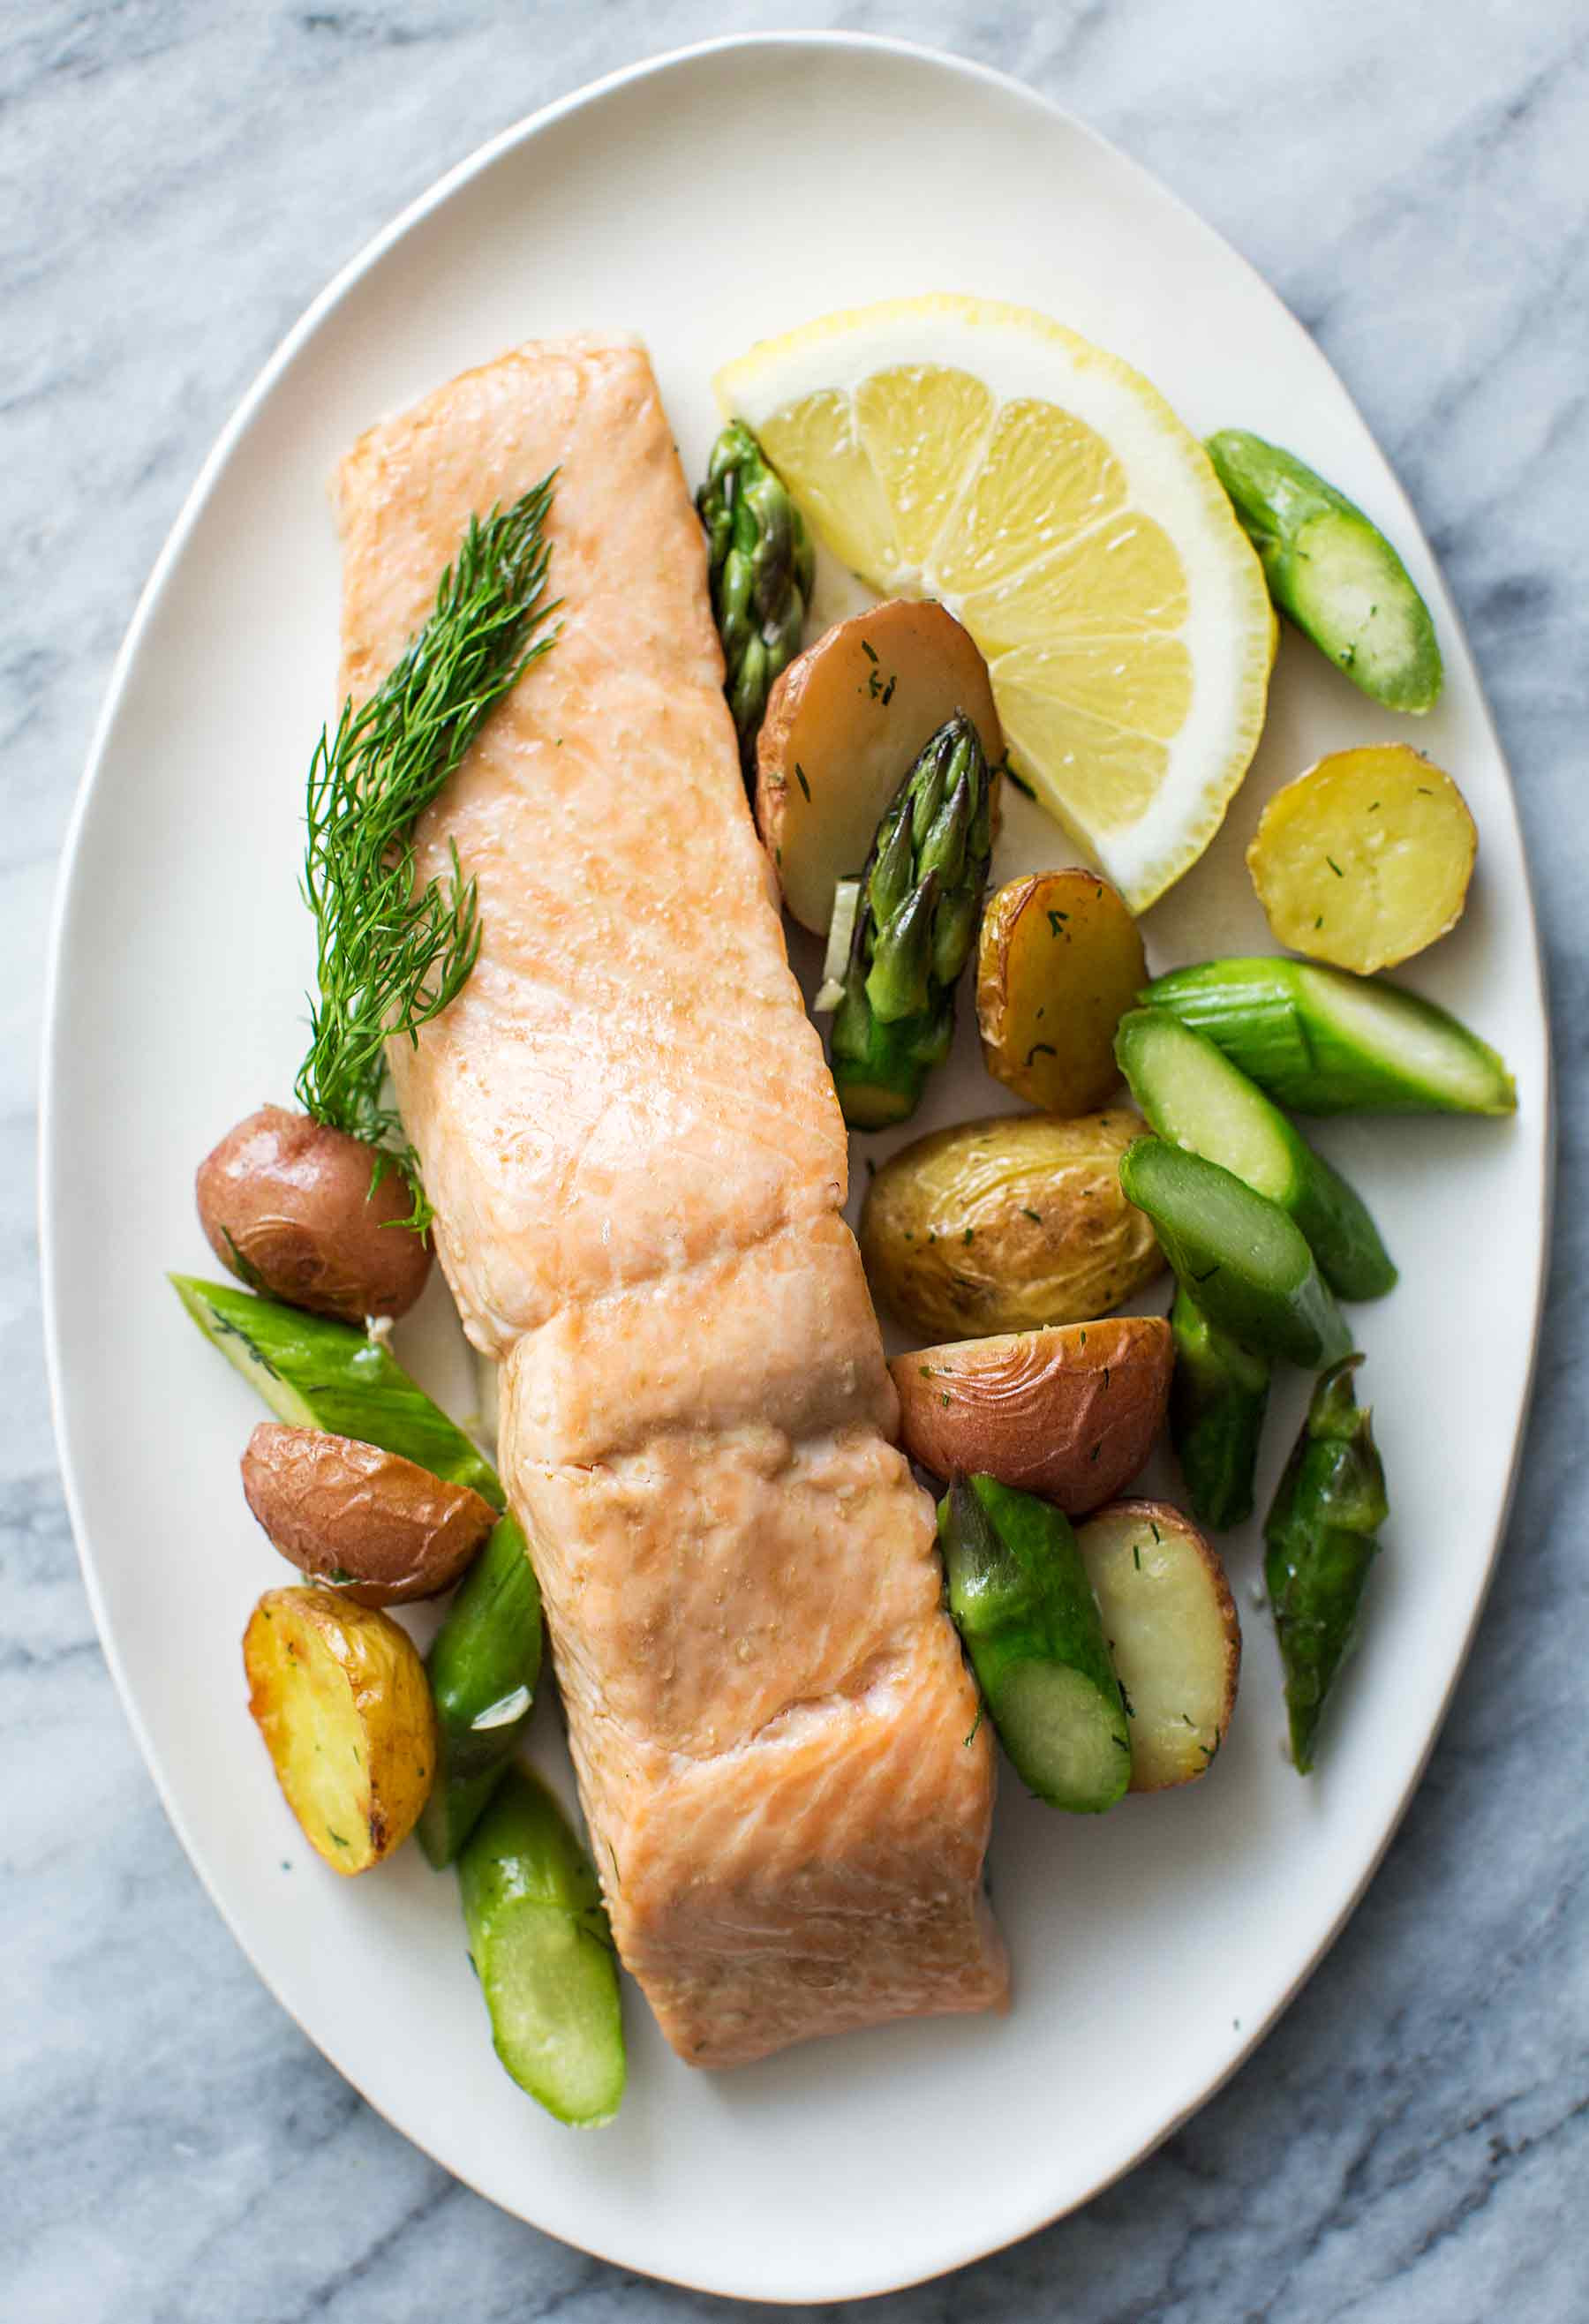 Salmon And Asparagus Recipe  Oven Roasted Salmon Asparagus and New Potatoes Recipe